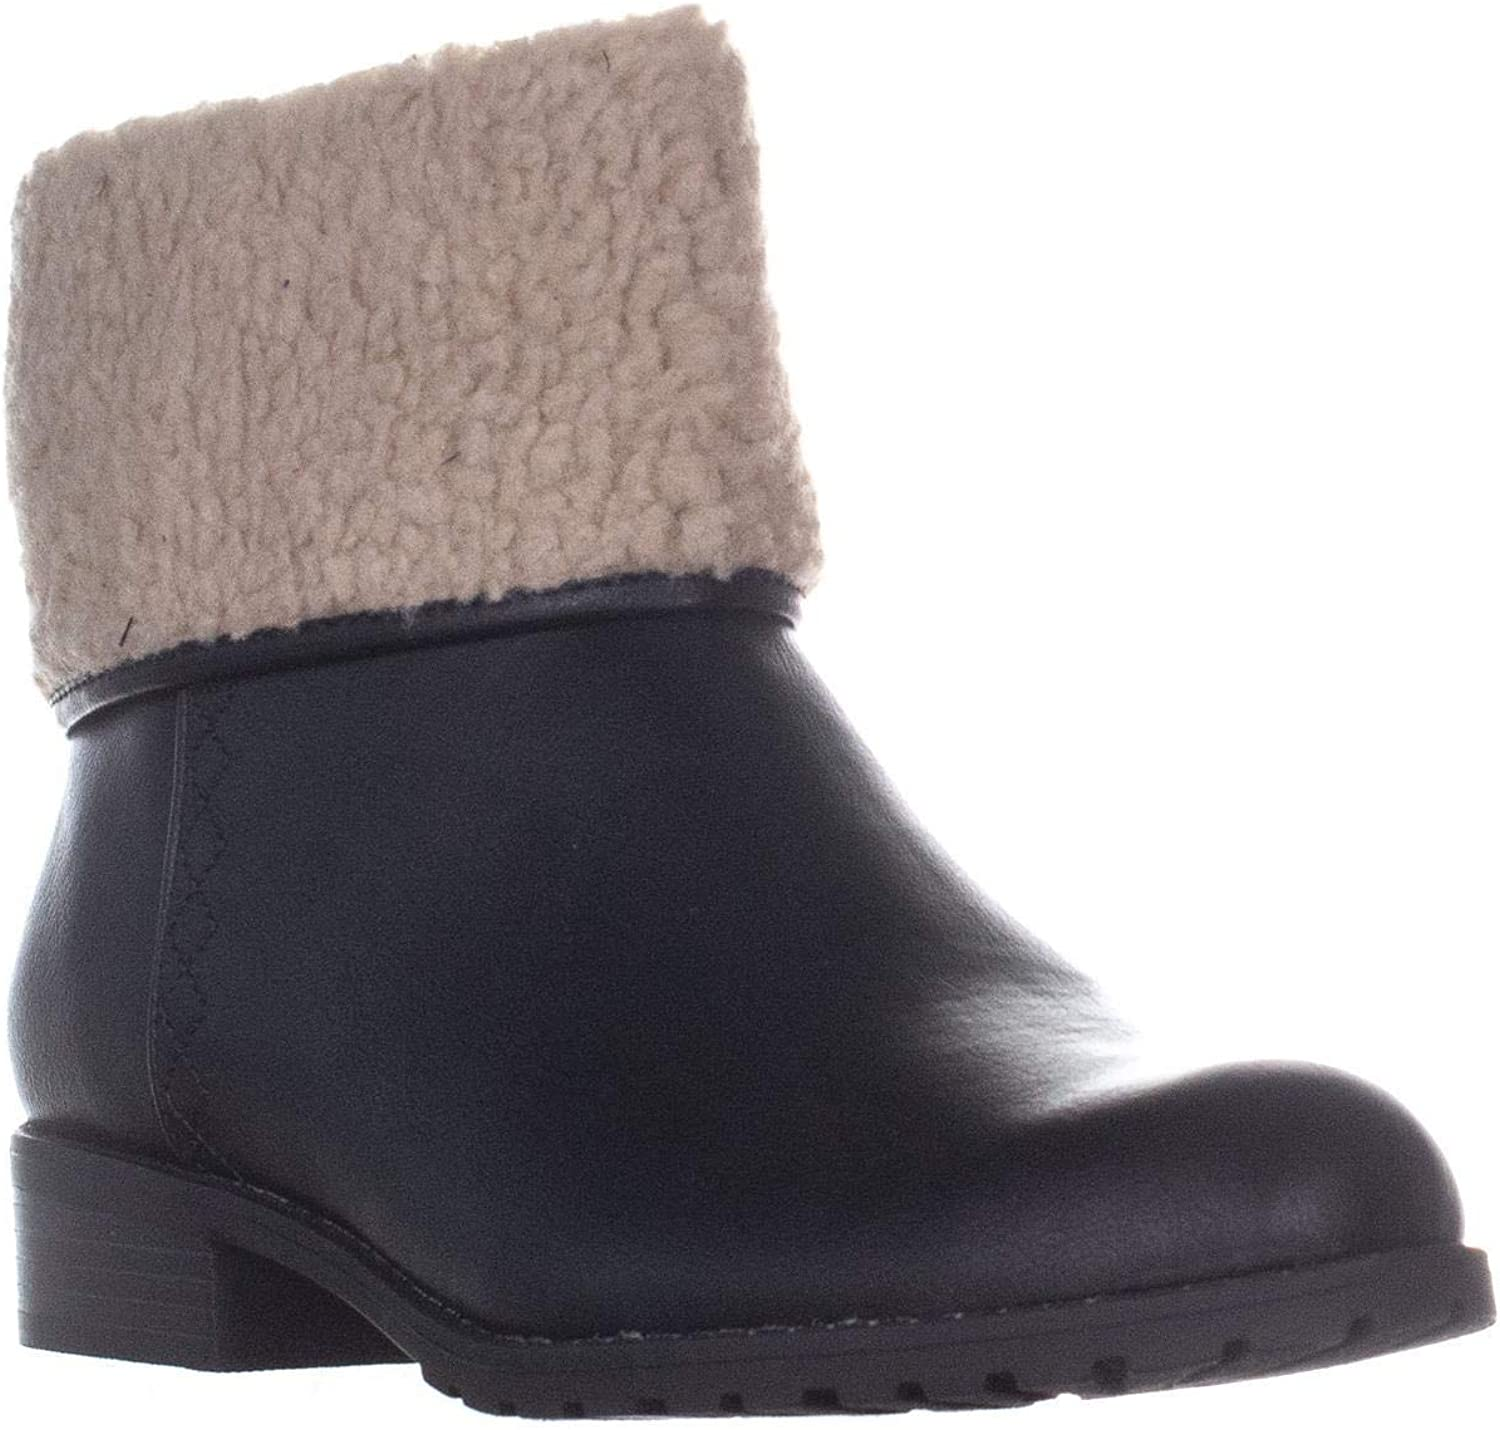 Style & Co. SC35 Bettey Ankle Boots, Black